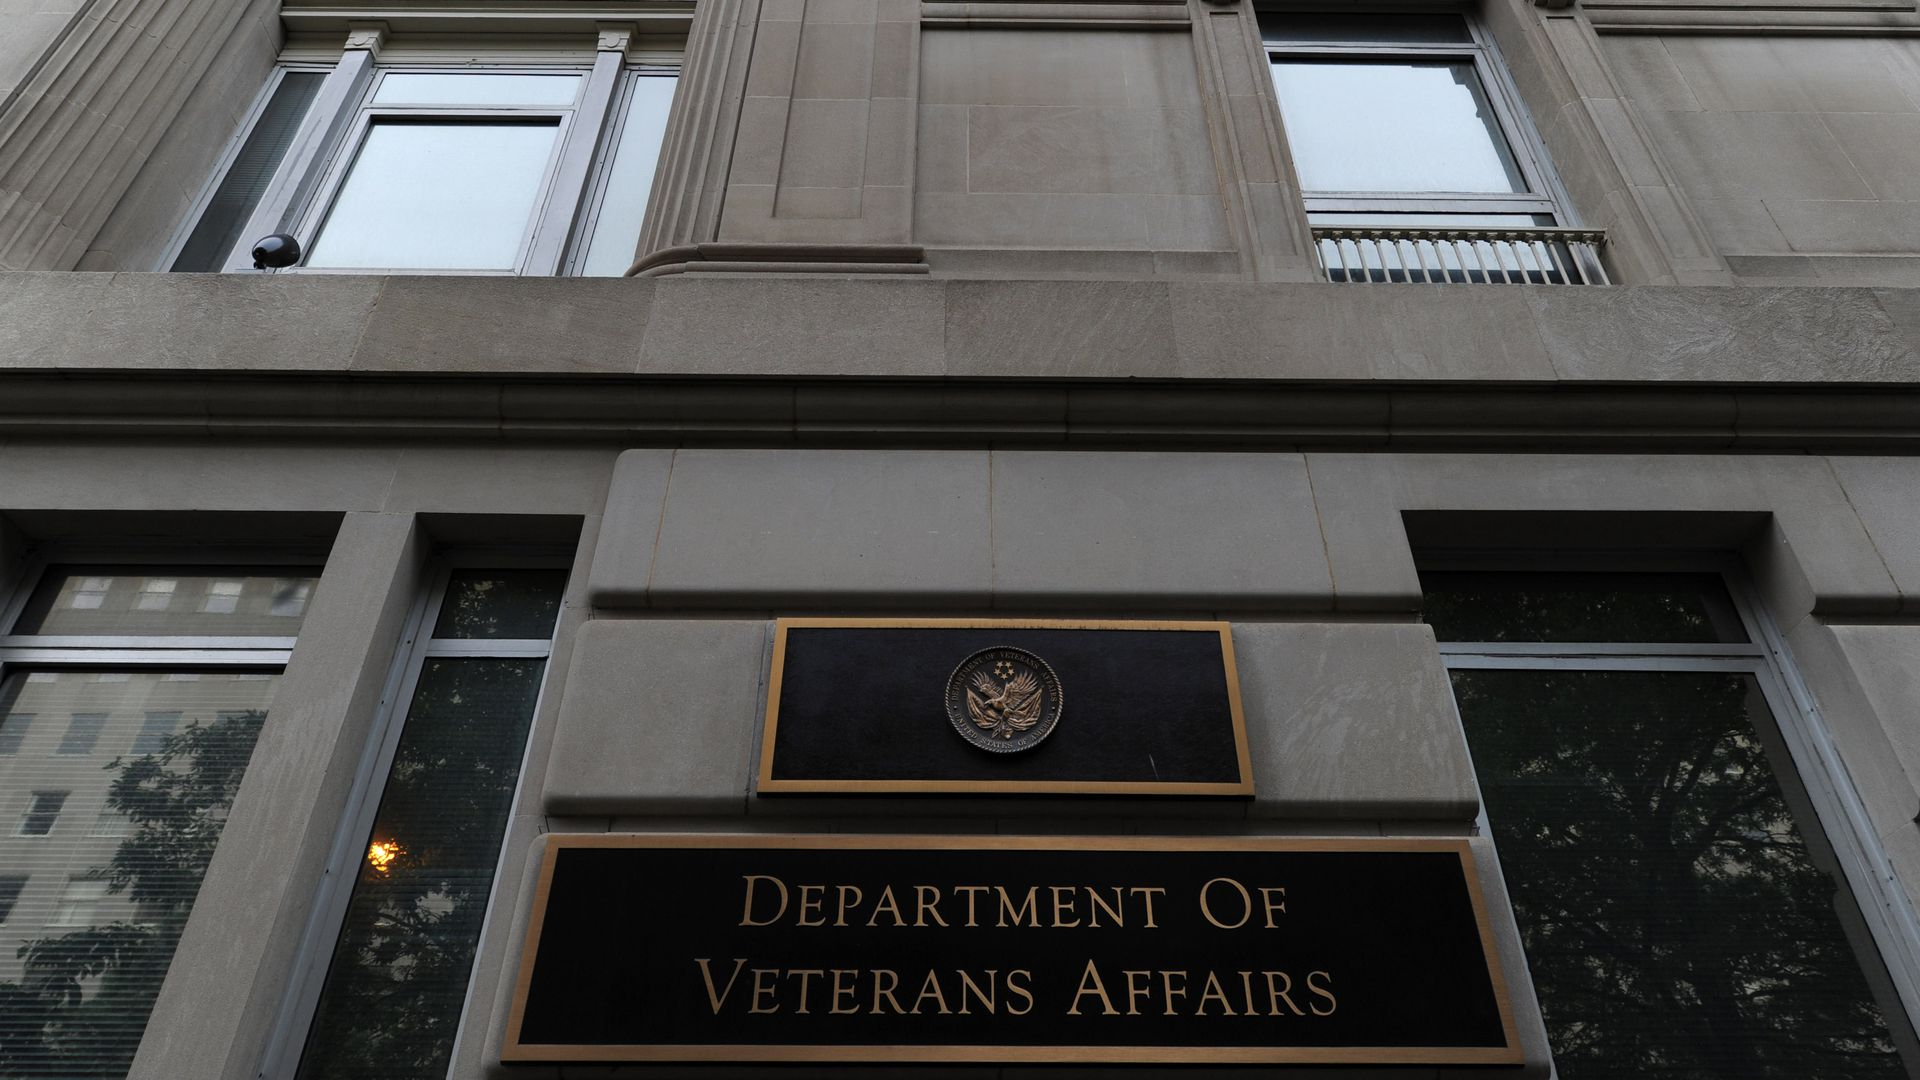 The Veterans Affairs headquarters